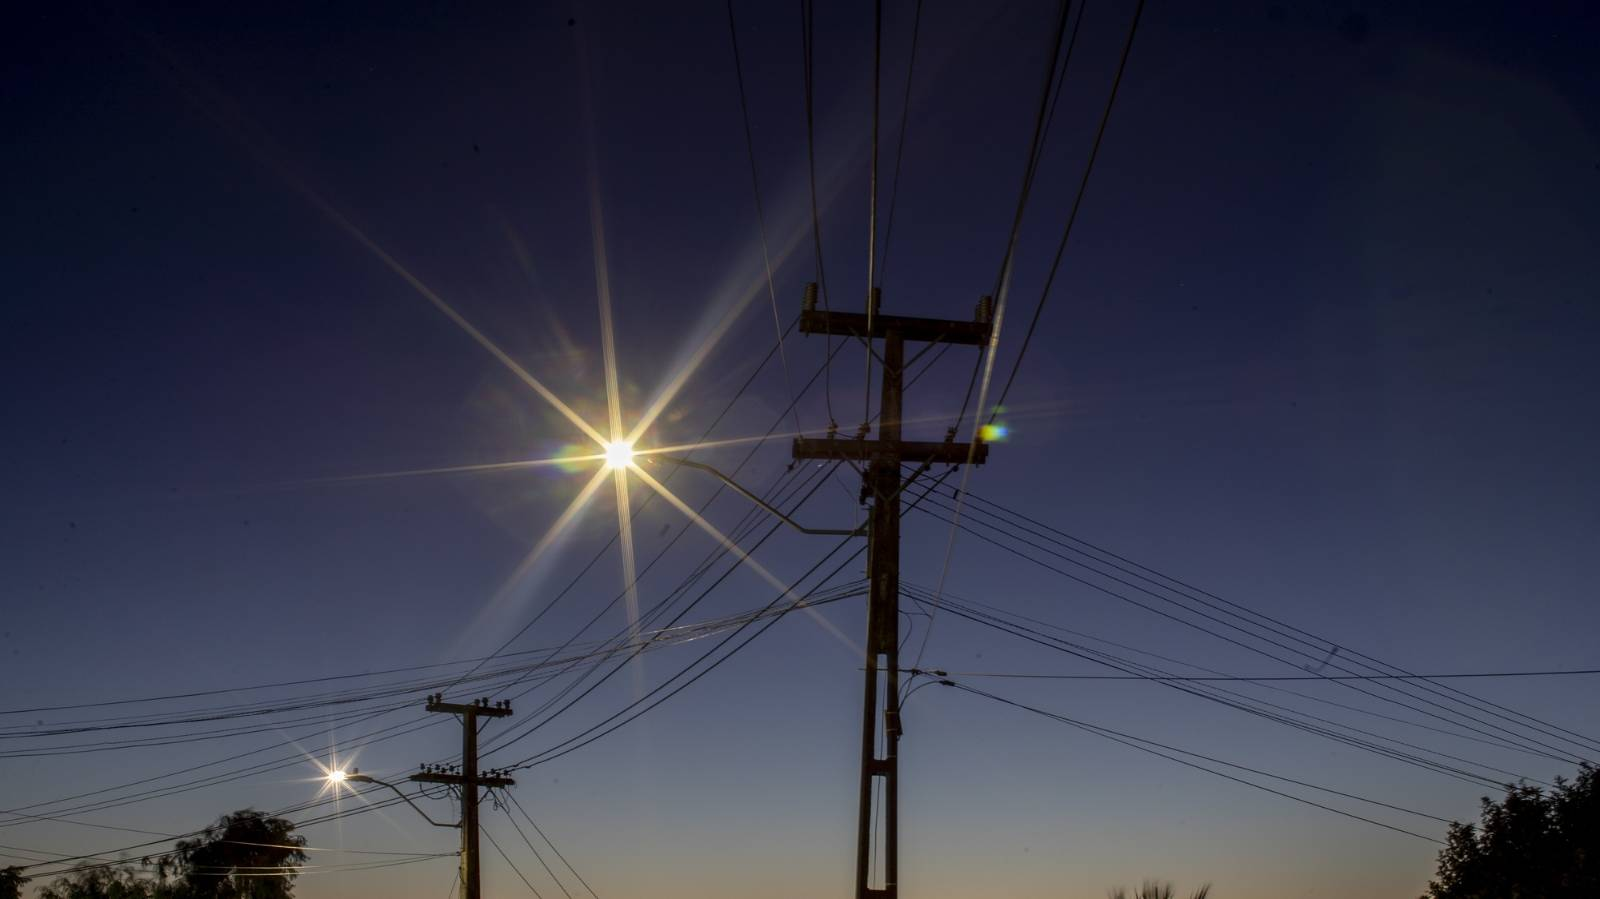 Changes to electricity charges could disadvantage 'vulnerable households'